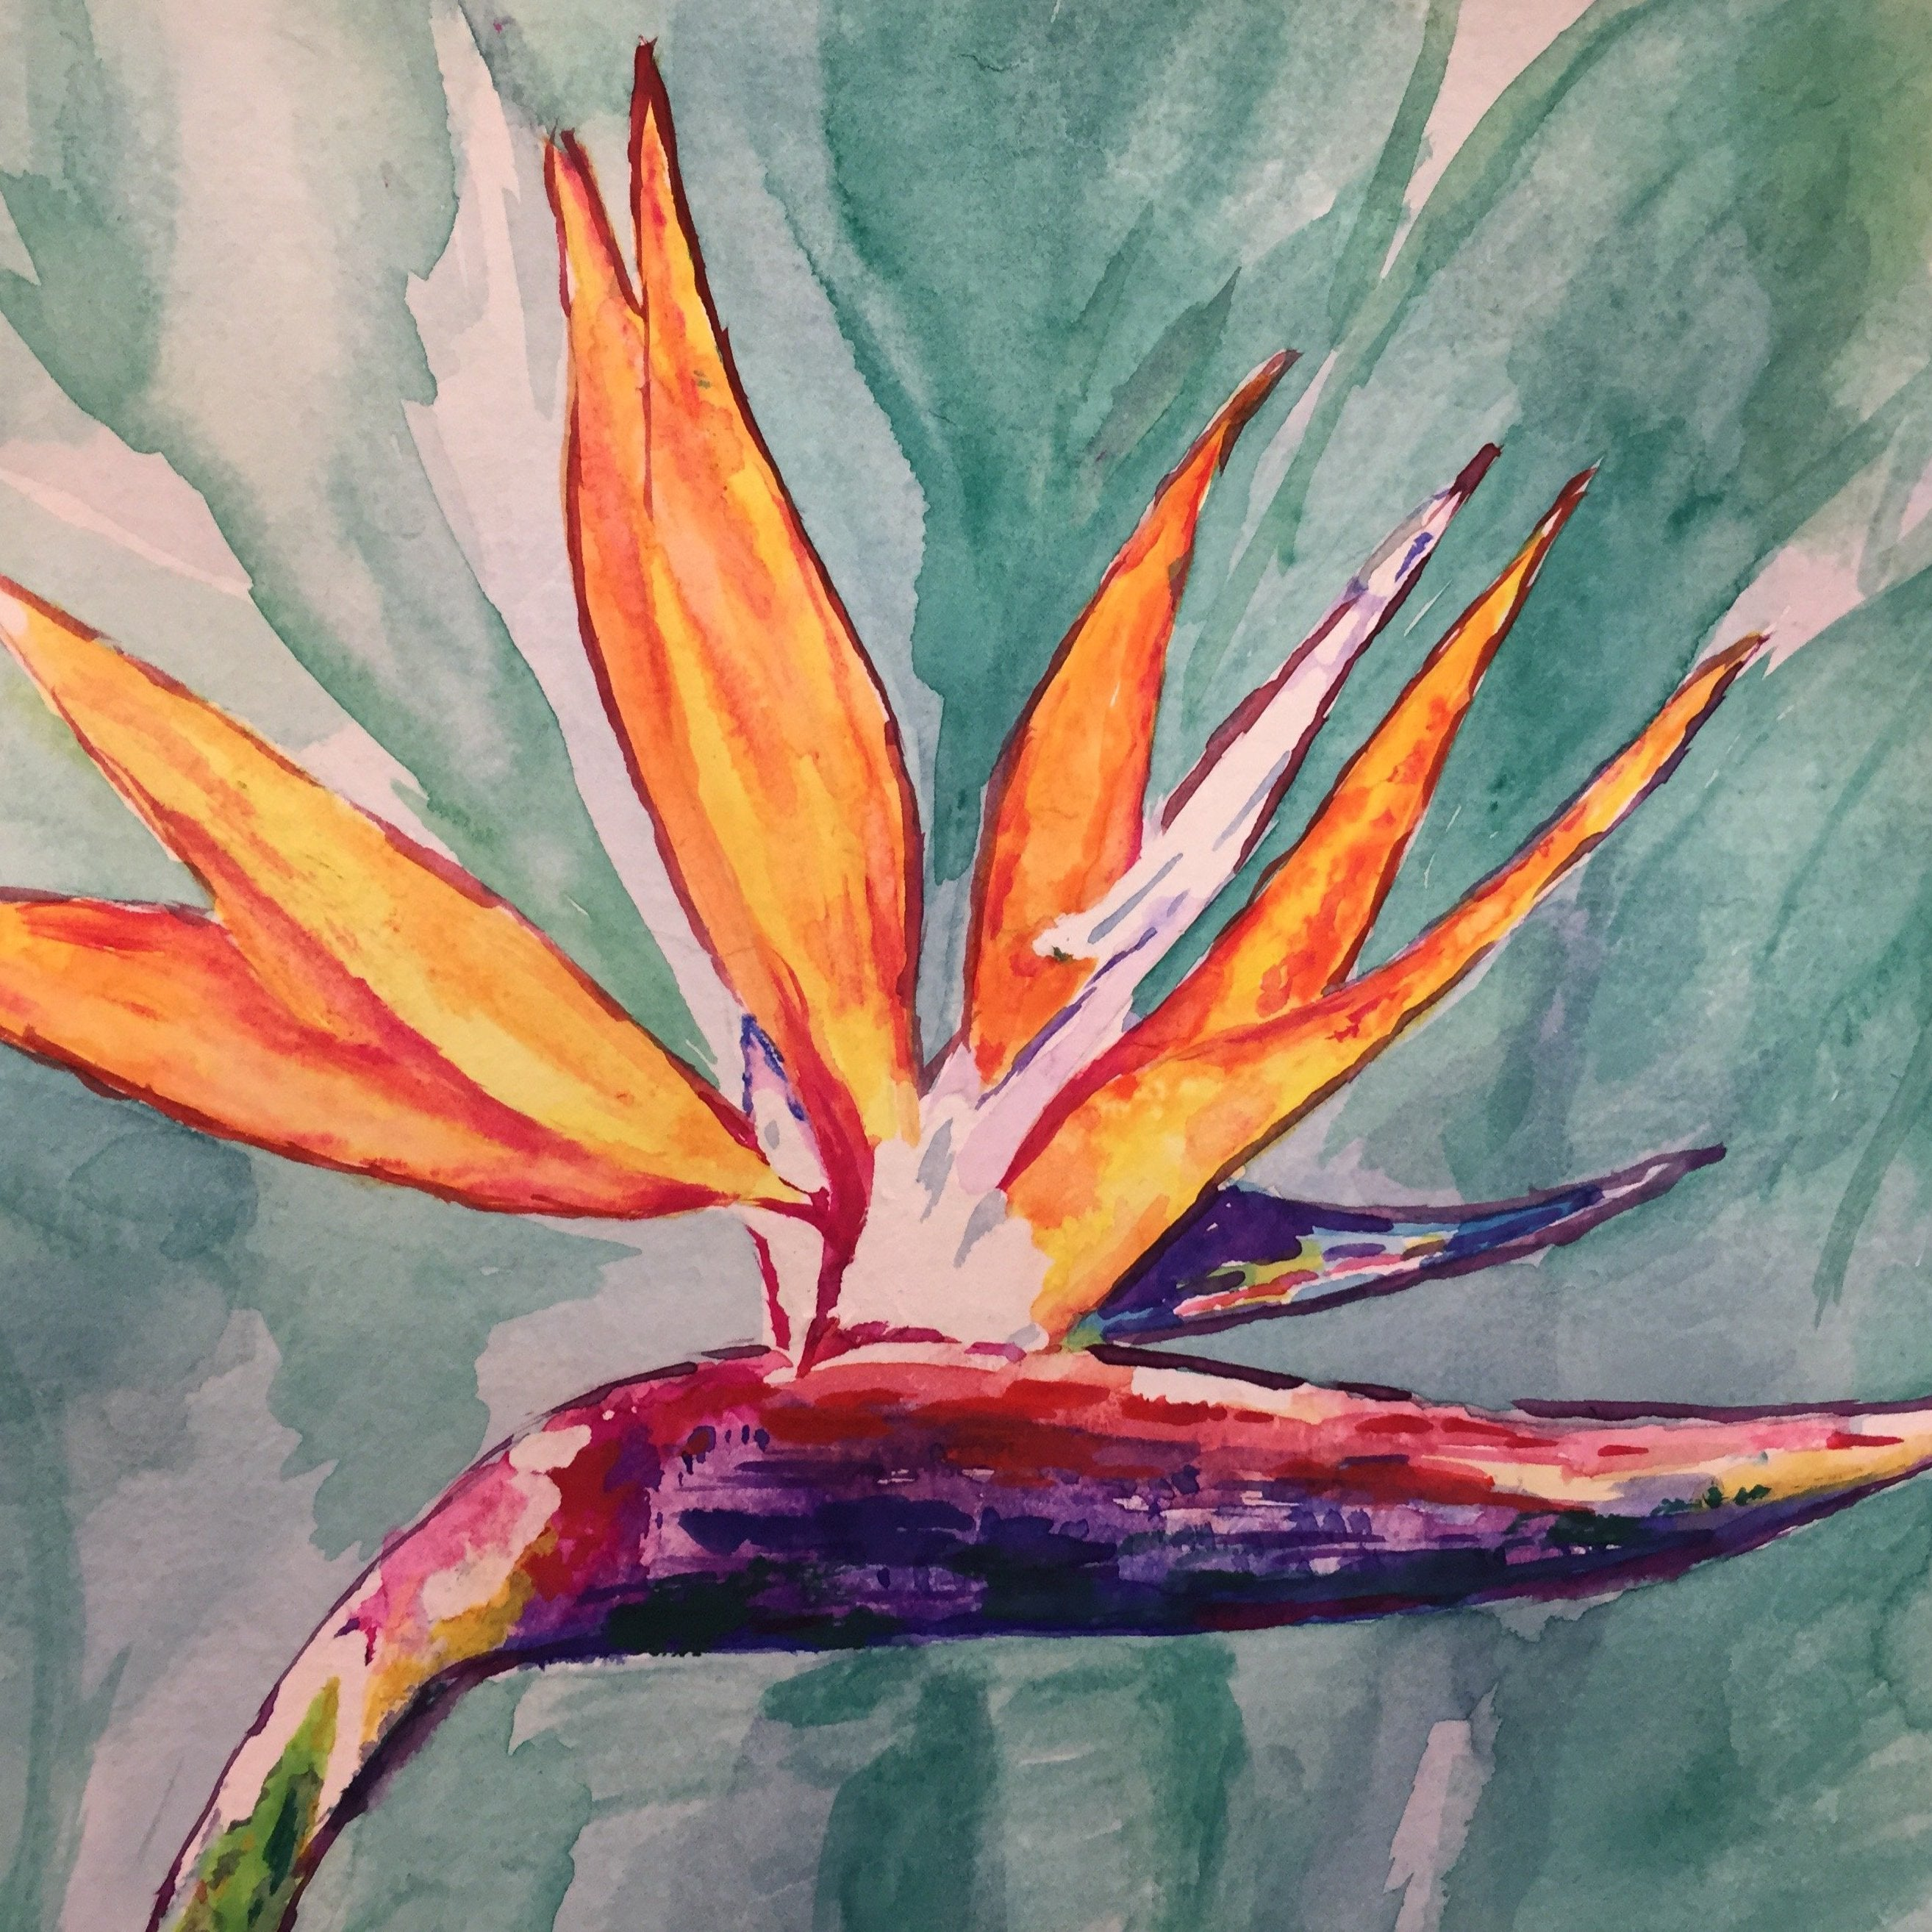 Watercolour Flowers - Creative Workshops Yorkshire